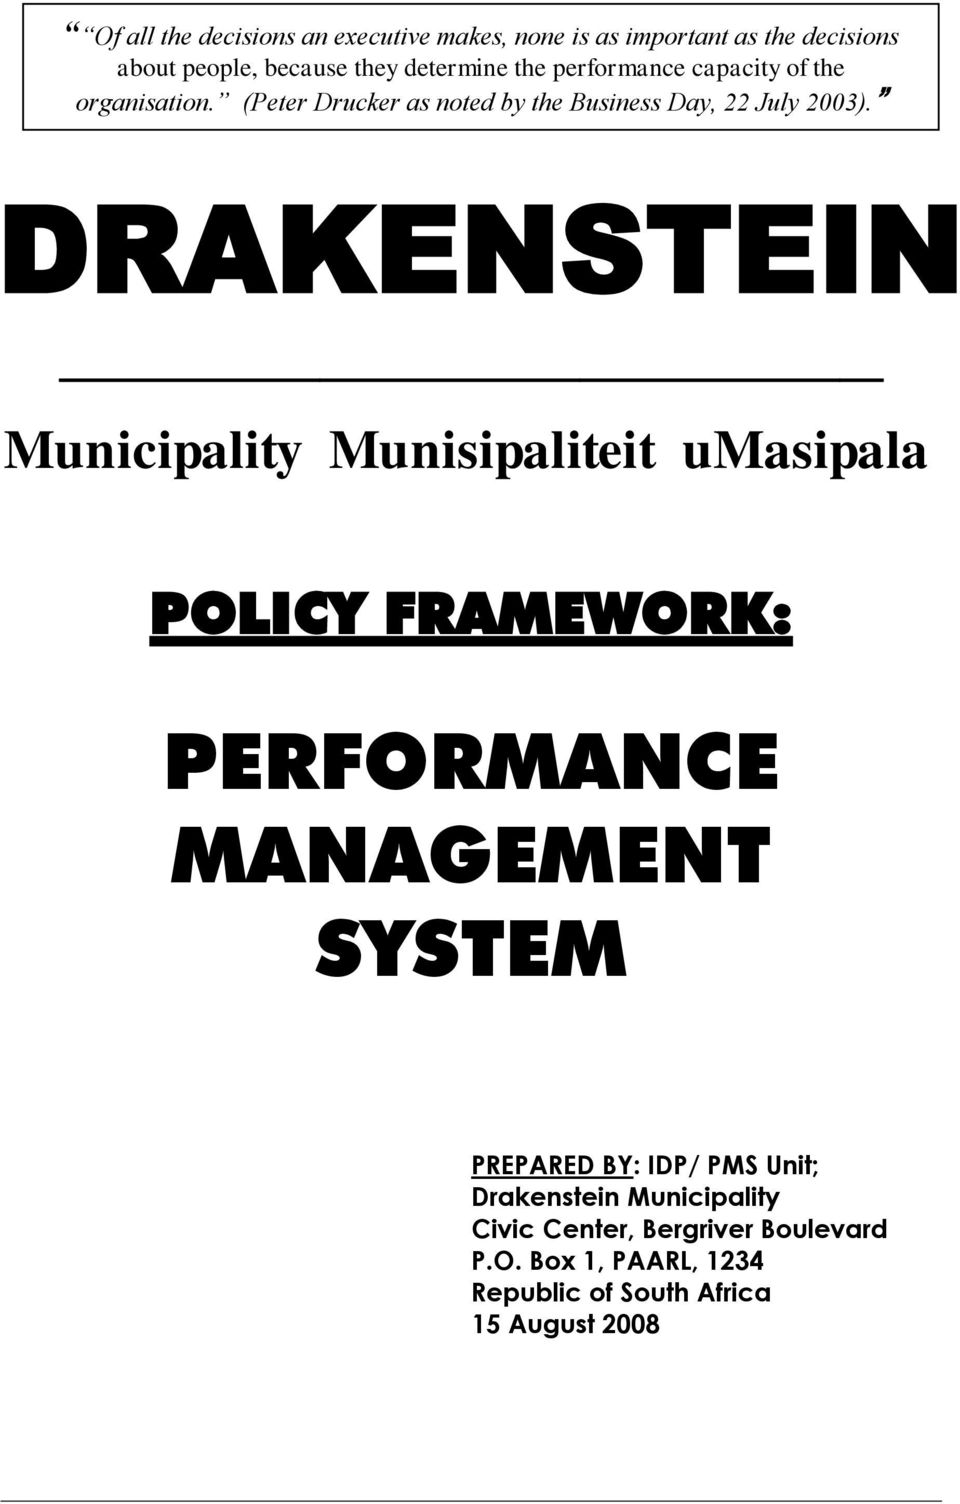 @ DRAKENSTEIN Municipality Munisipaliteit umasipala POLICY FRAMEWORK: PERFORMANCE MANAGEMENT SYSTEM PREPARED BY: IDP/